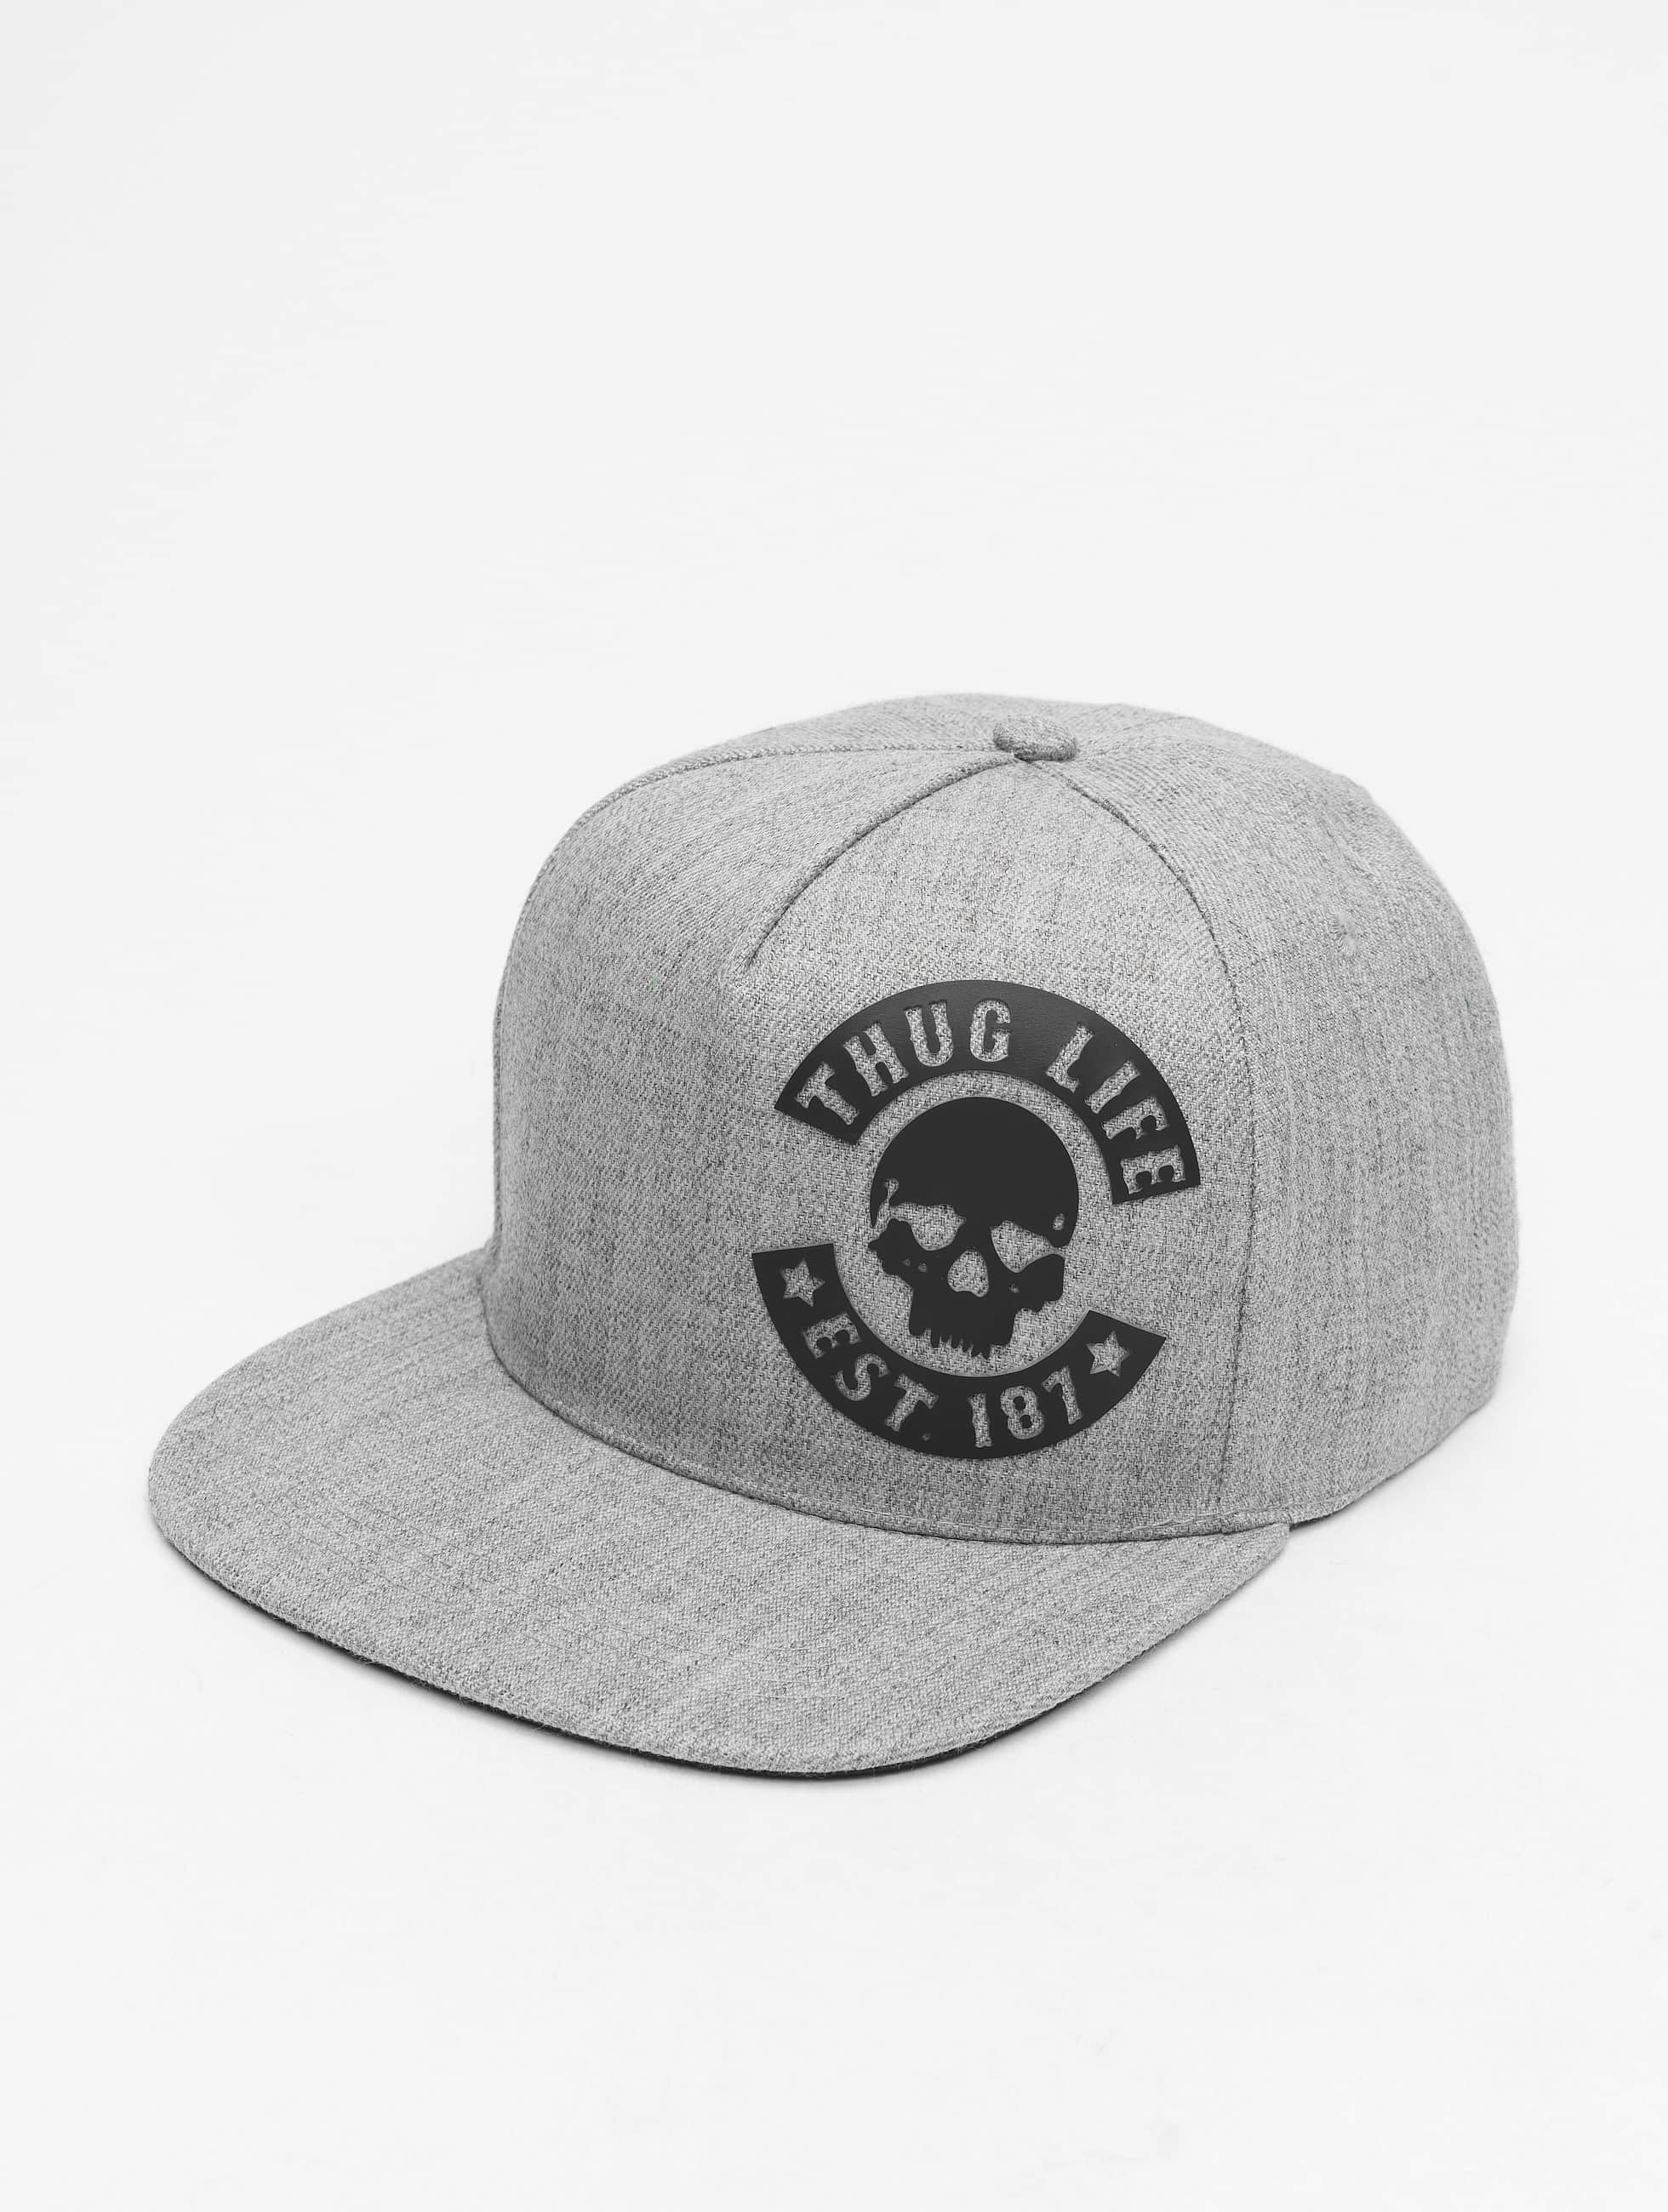 Thug Life / Snapback Cap Young in grey Adjustable